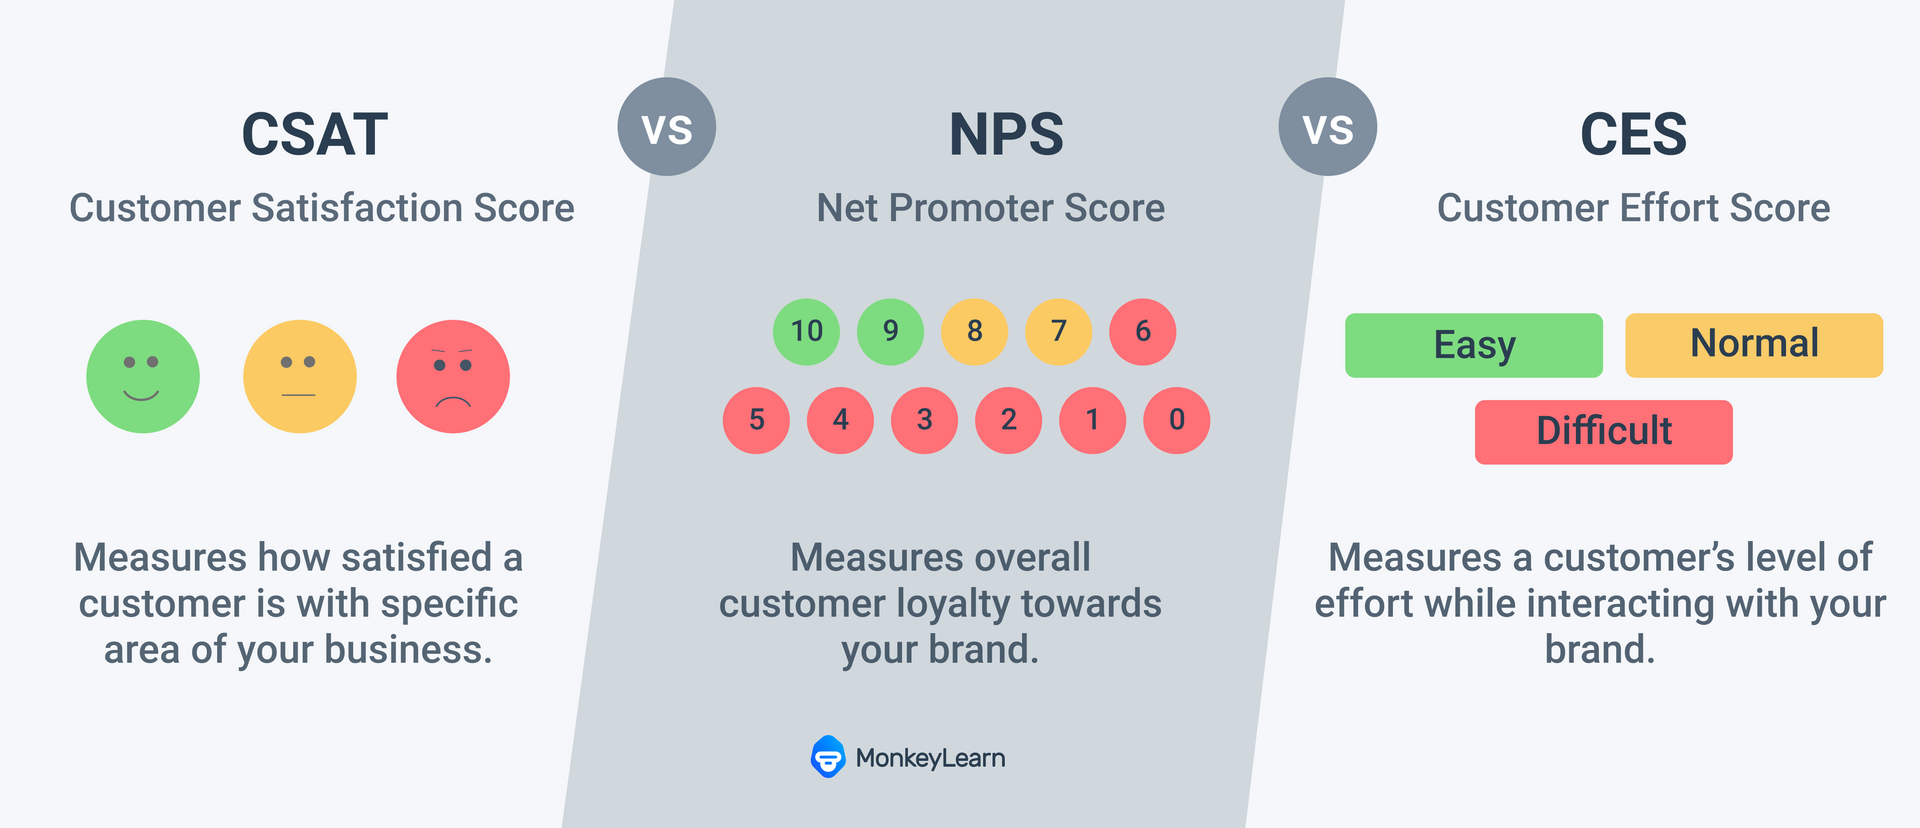 CSAT measures customer satisfaction in specific area. NPS measures overall loyalty to a brand. CES measures customer effort.